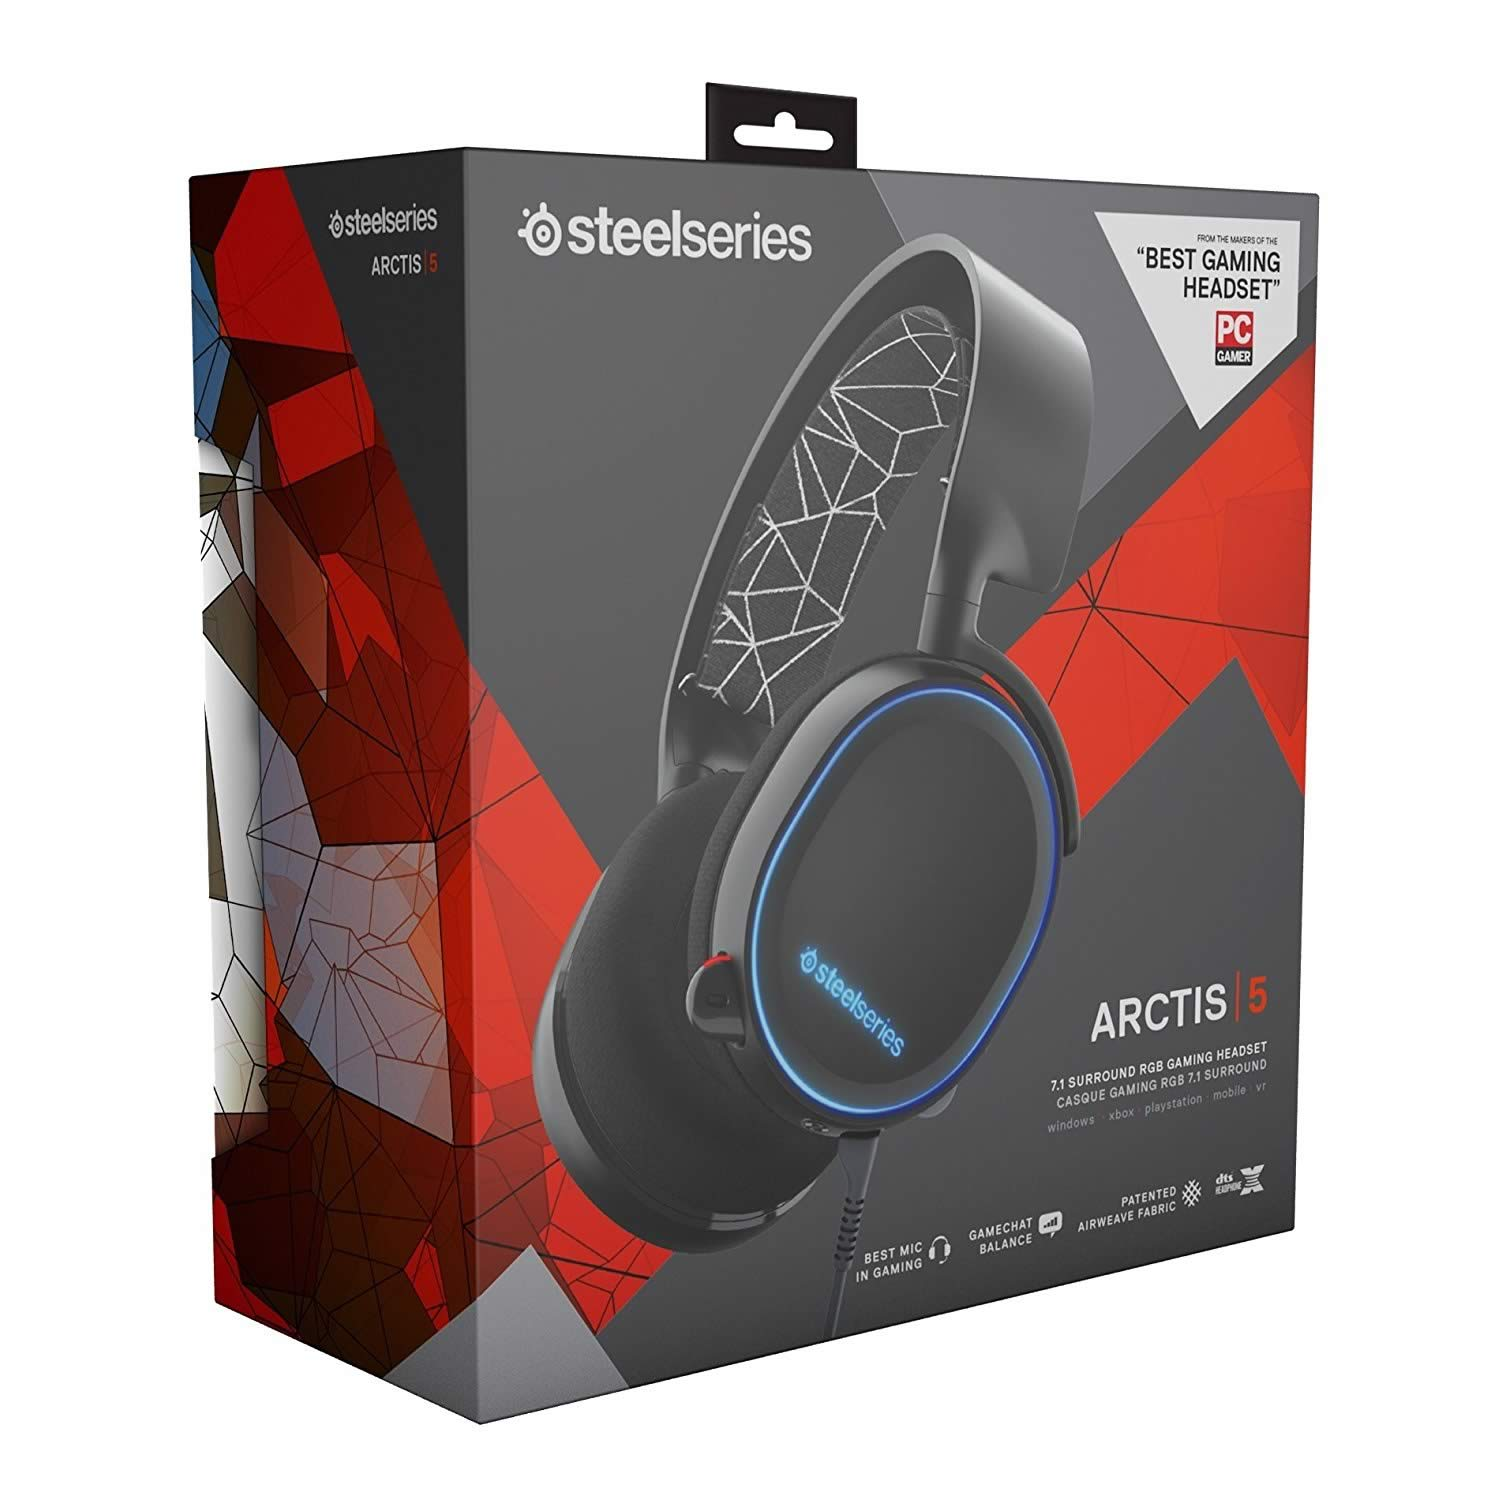 STEELSERIES - HEADSET ARCTIS 5 BLACK 61443 (PC, Mac, PS4, XBOX One, Switch, Mobile)